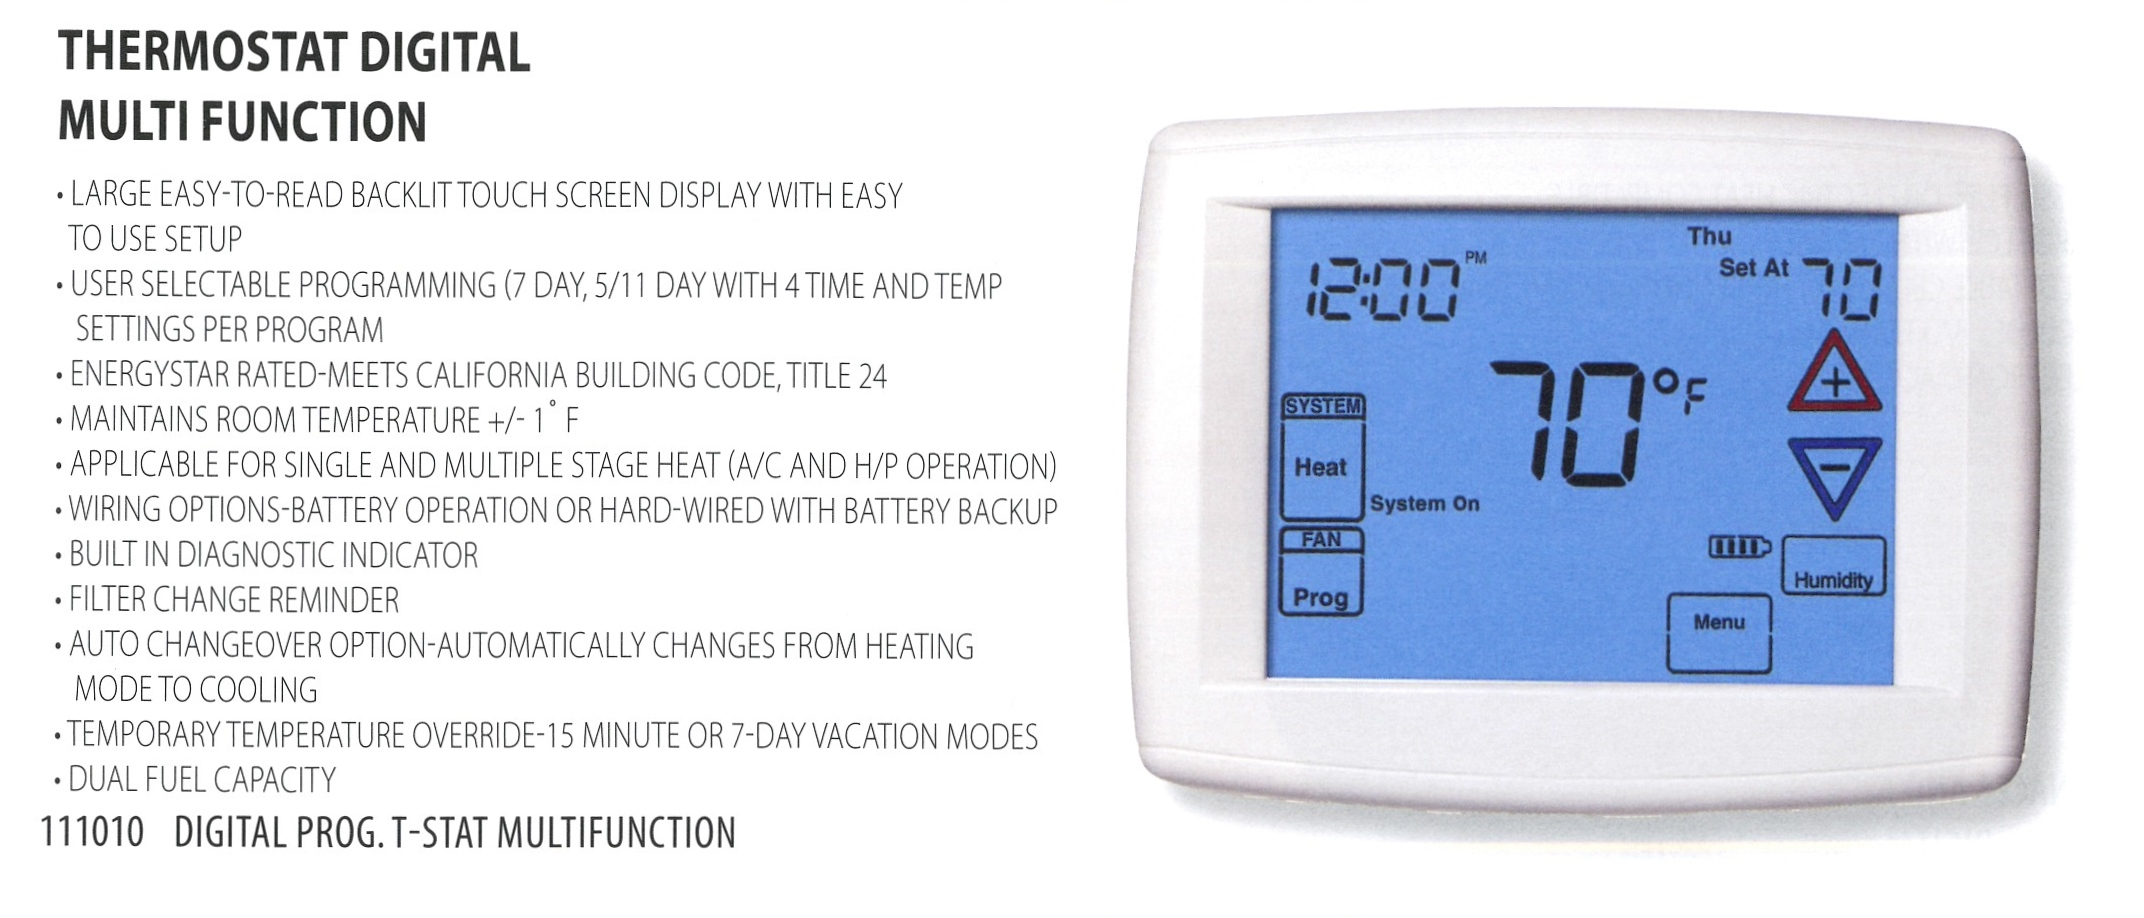 111010 THERMOSTAT DIGITAL MULTI FUNCTION